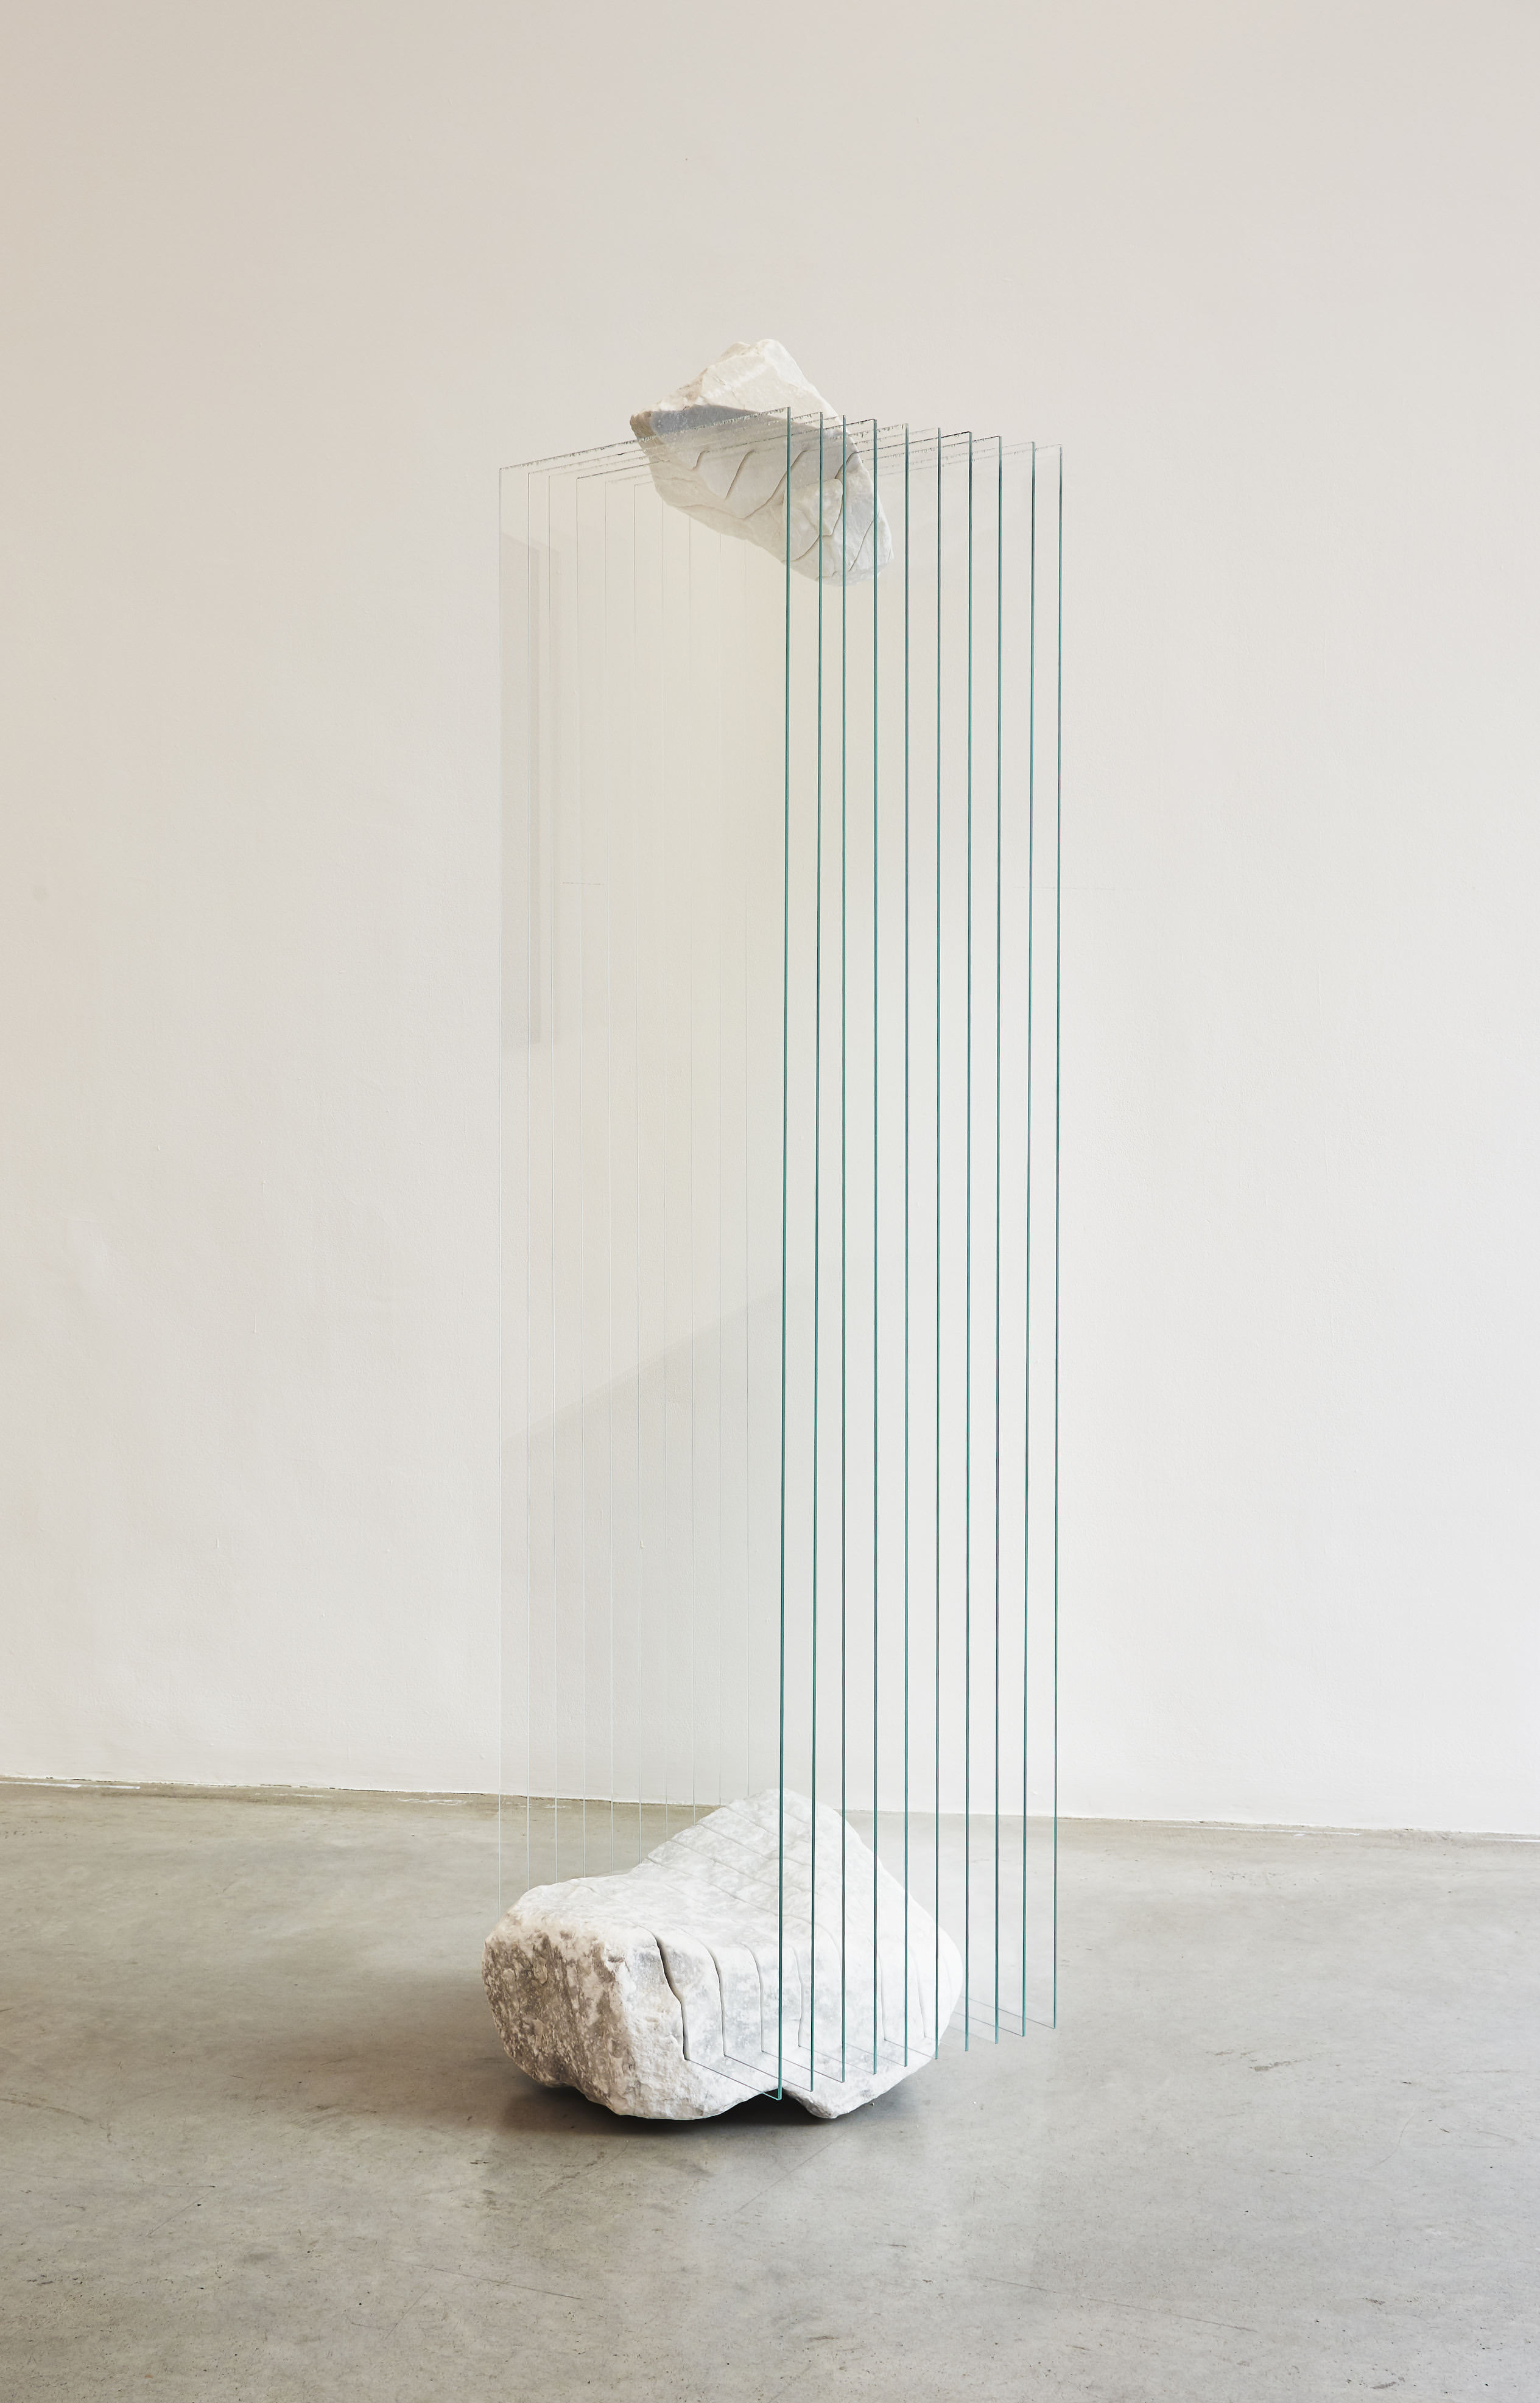 Gianpietro Carlesso Iceberg, 2016 Carrara marble and tempered glass, 184 x 53 x 50 cm